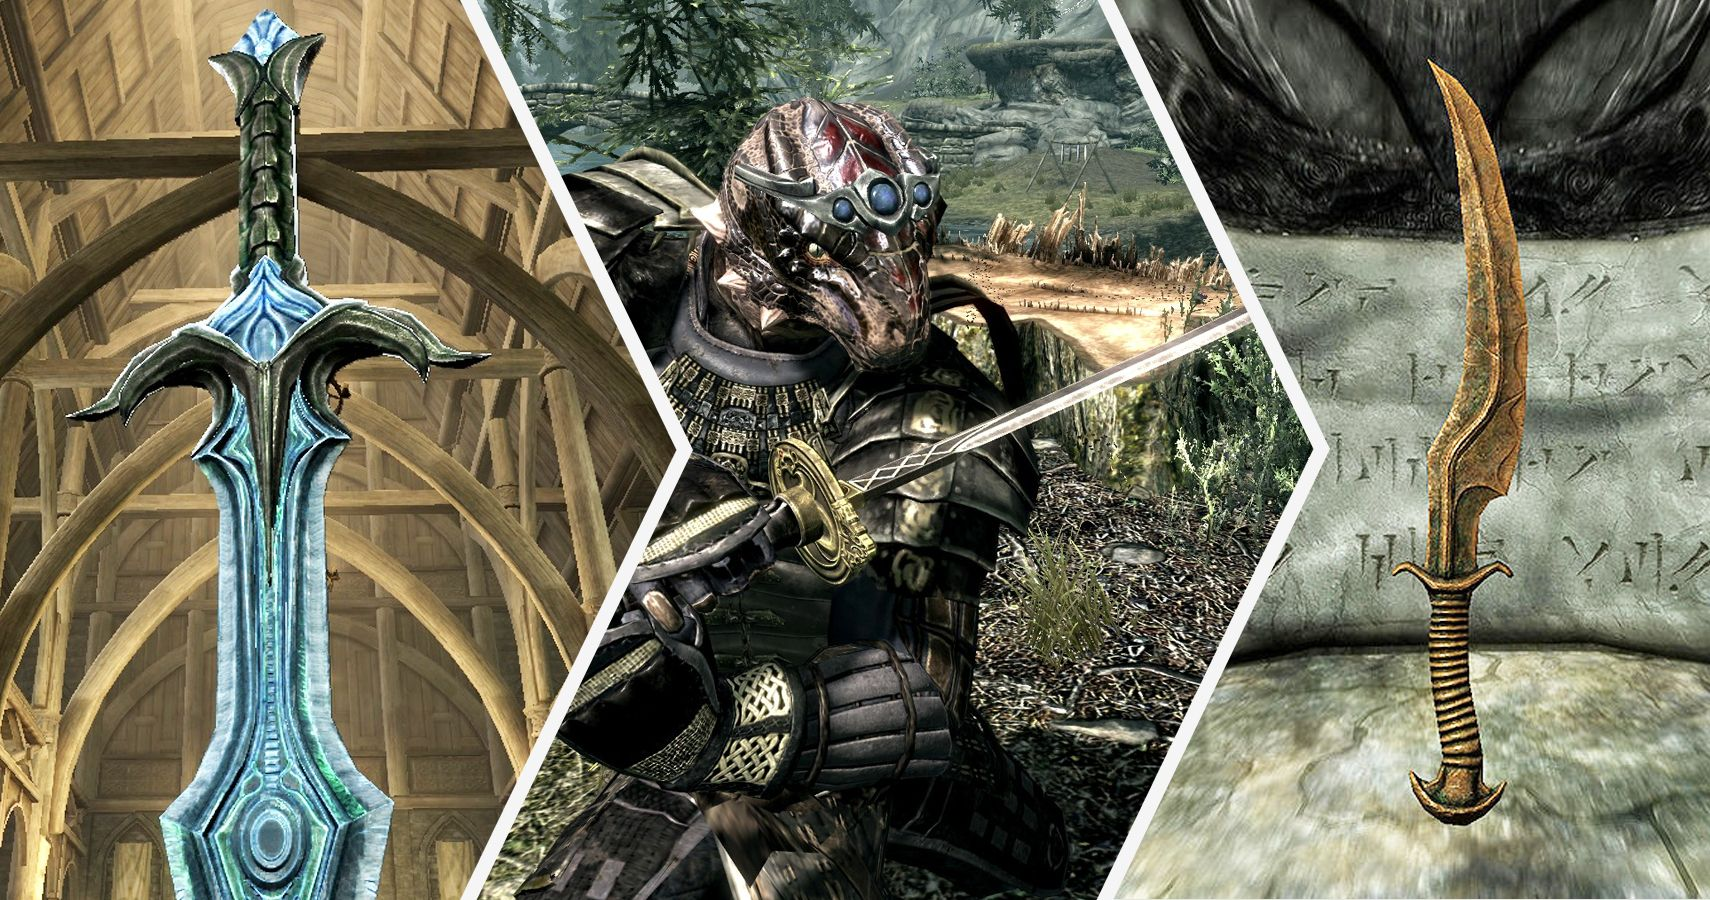 Skyrim: 10 Worthless Weapons Everyone Uses (And 15 That Are Way Better)